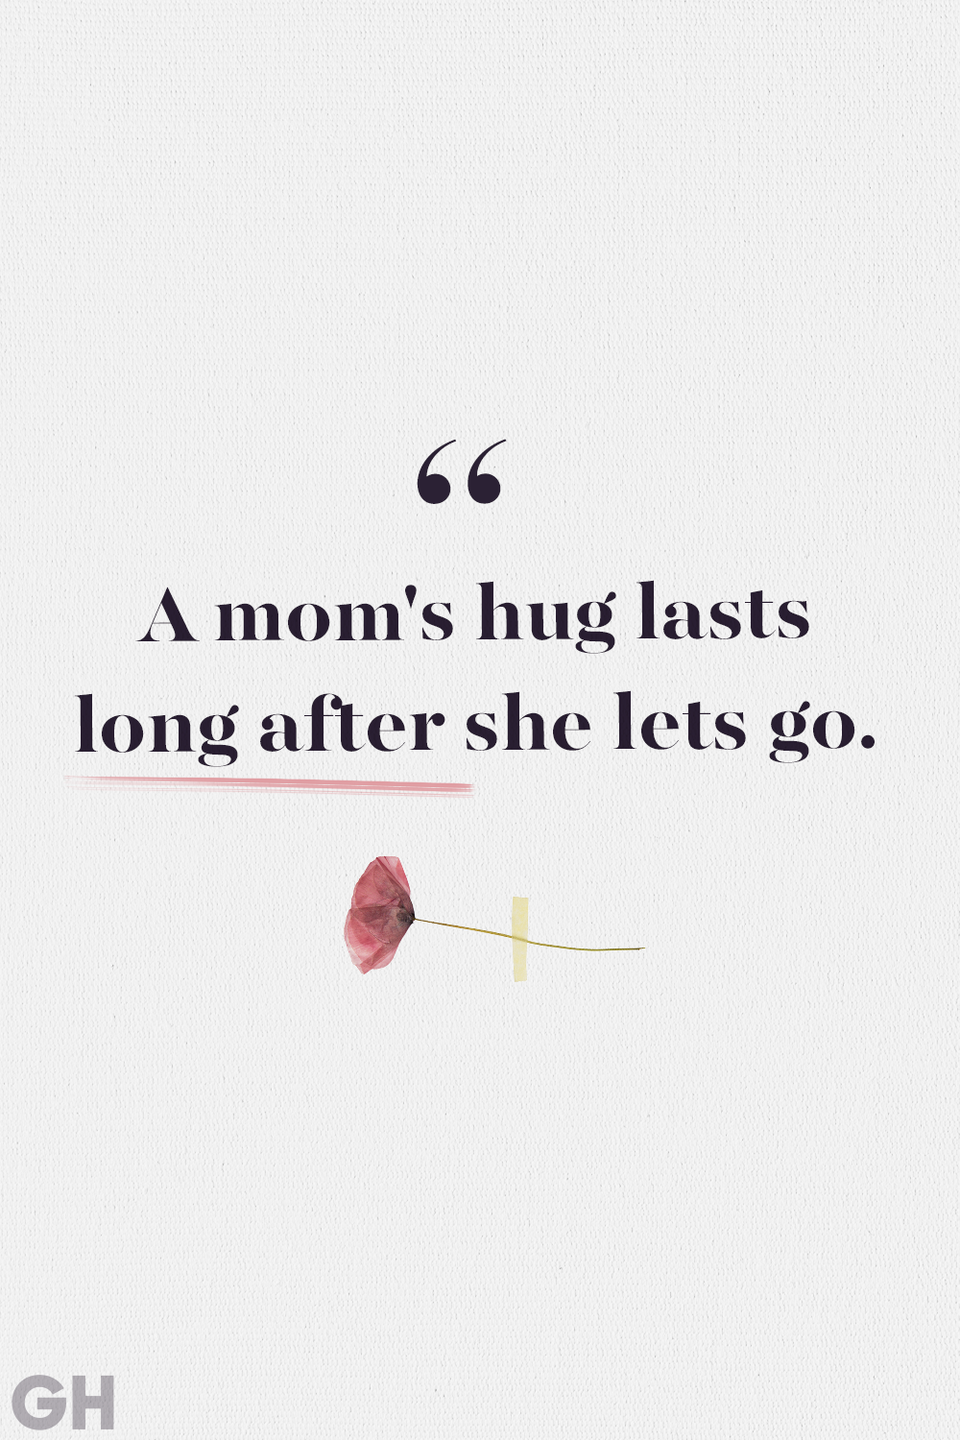 <p>A mom's hug lasts long after she lets go.</p>